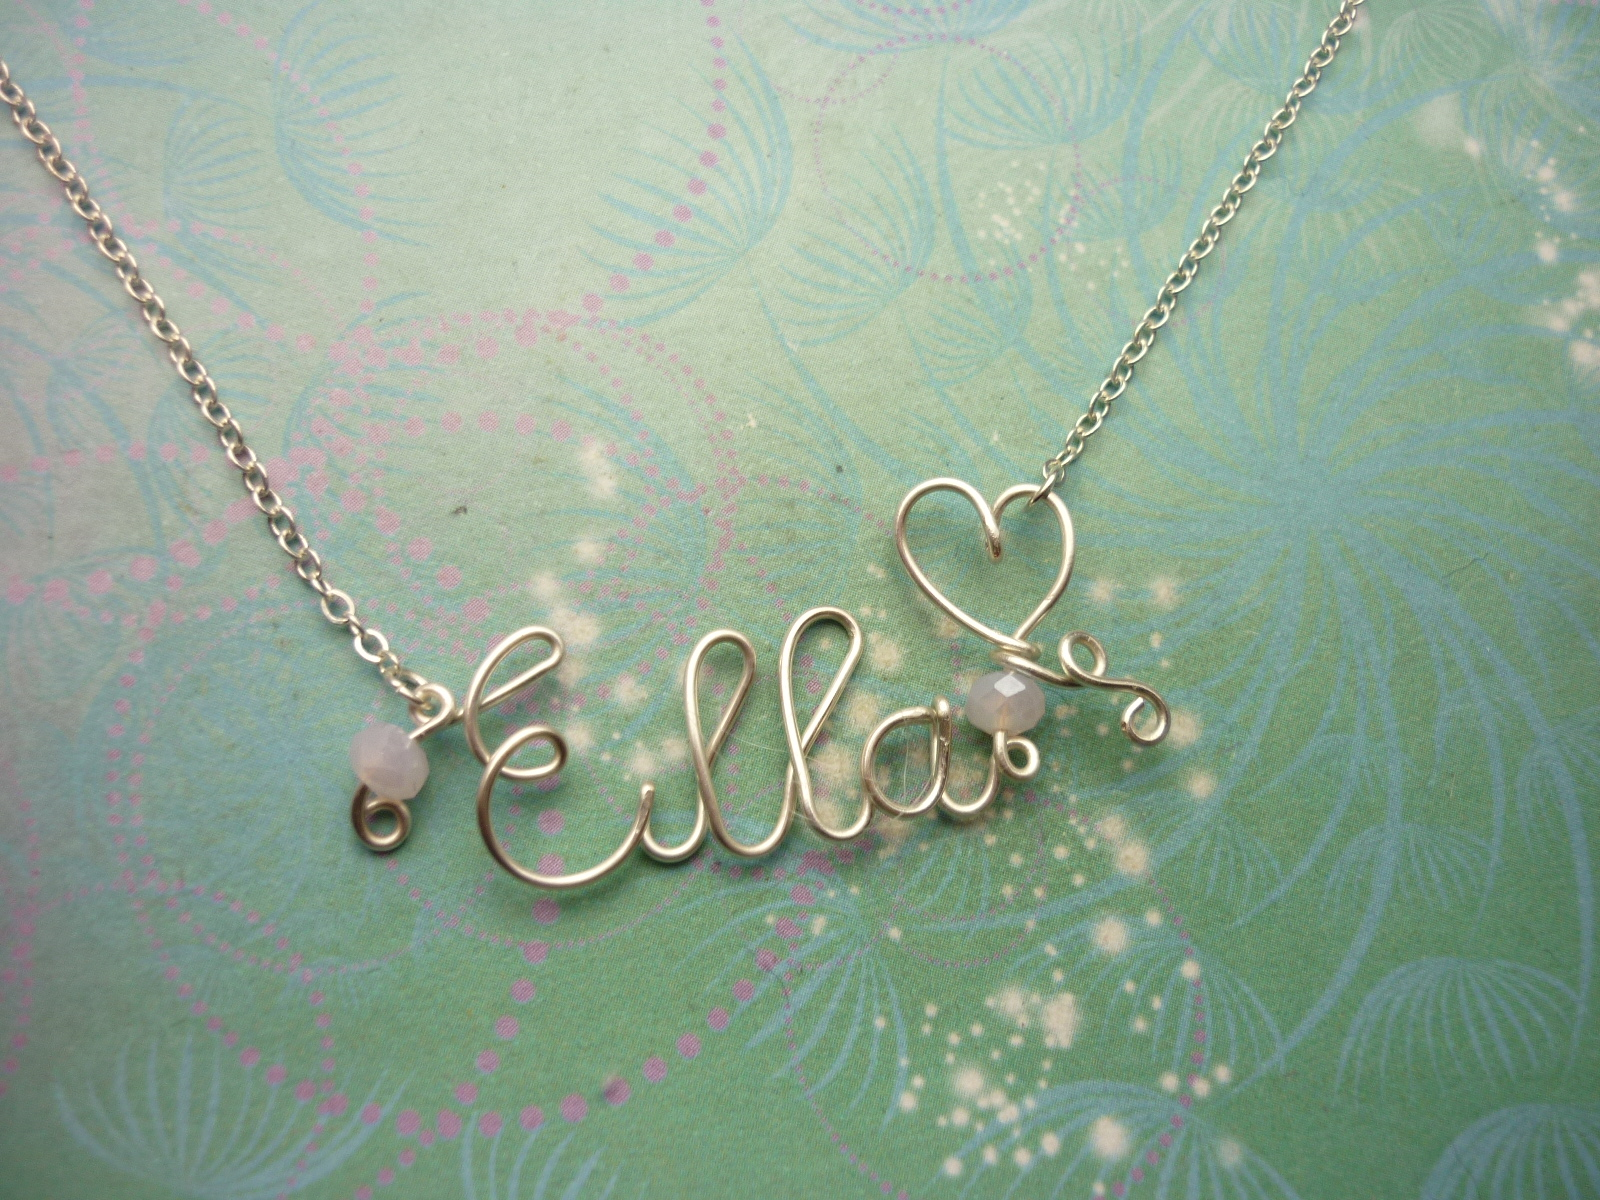 Best Seller Personalised Name Necklace